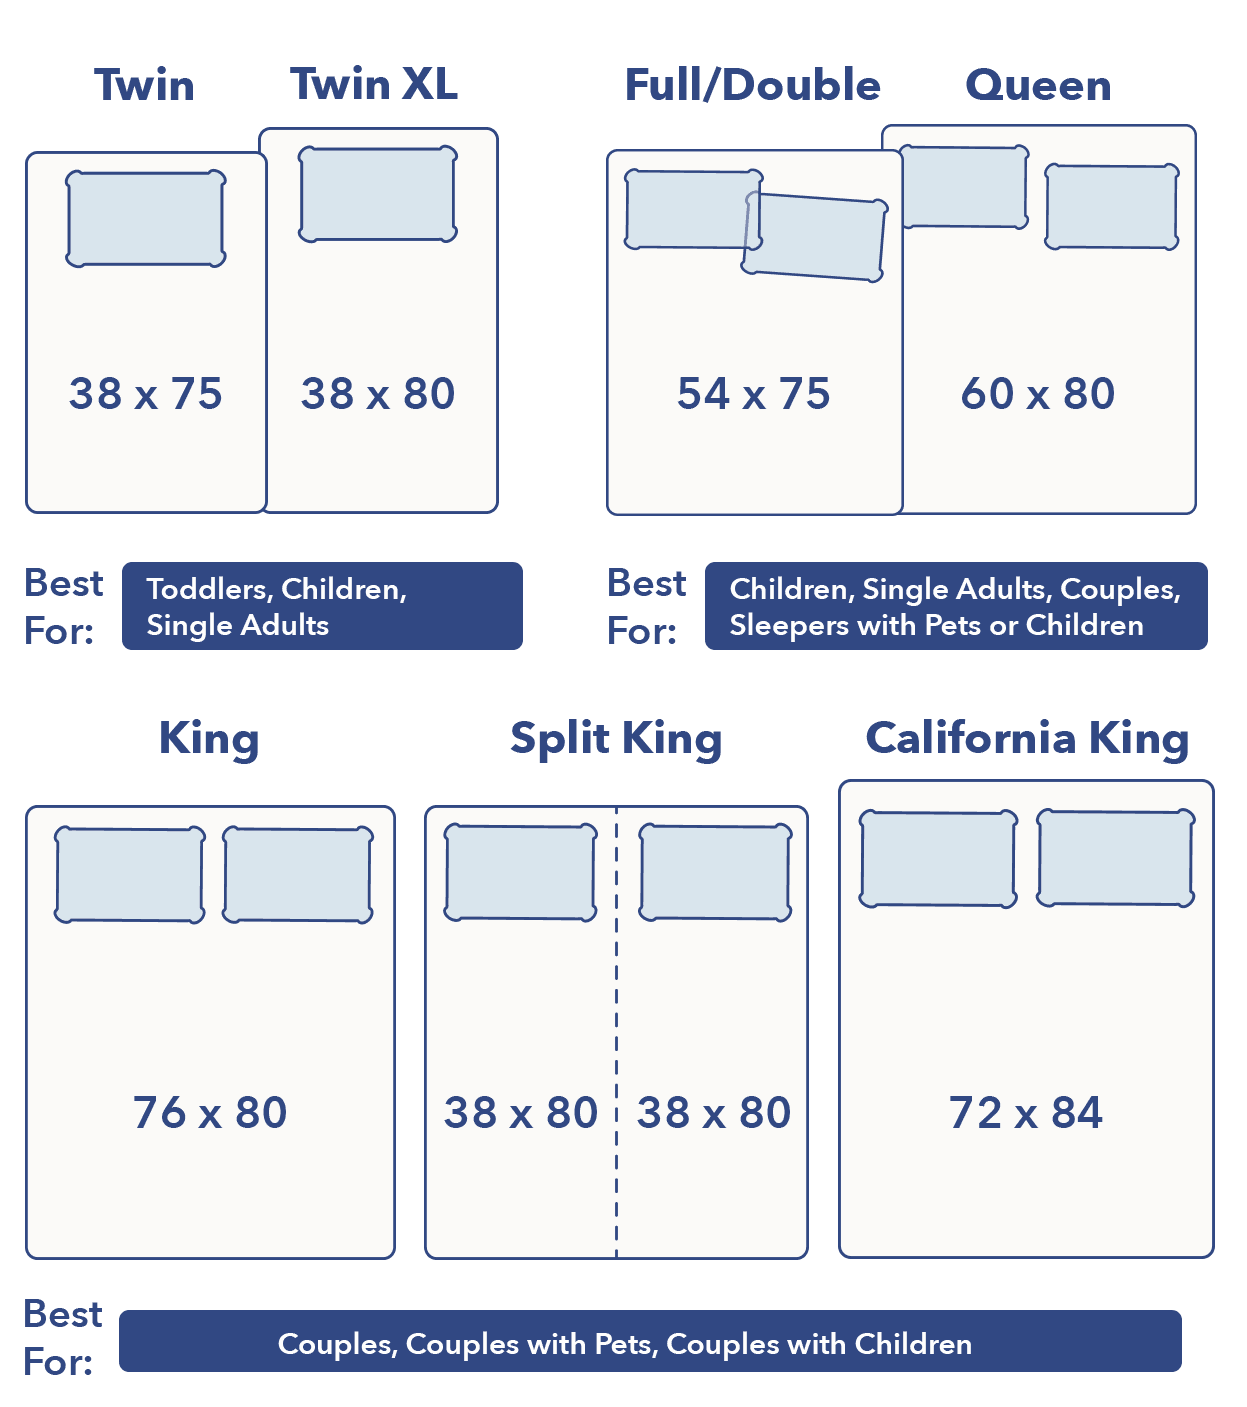 Bed Sizes 2020 Exact Dimensions For King Queen And Other